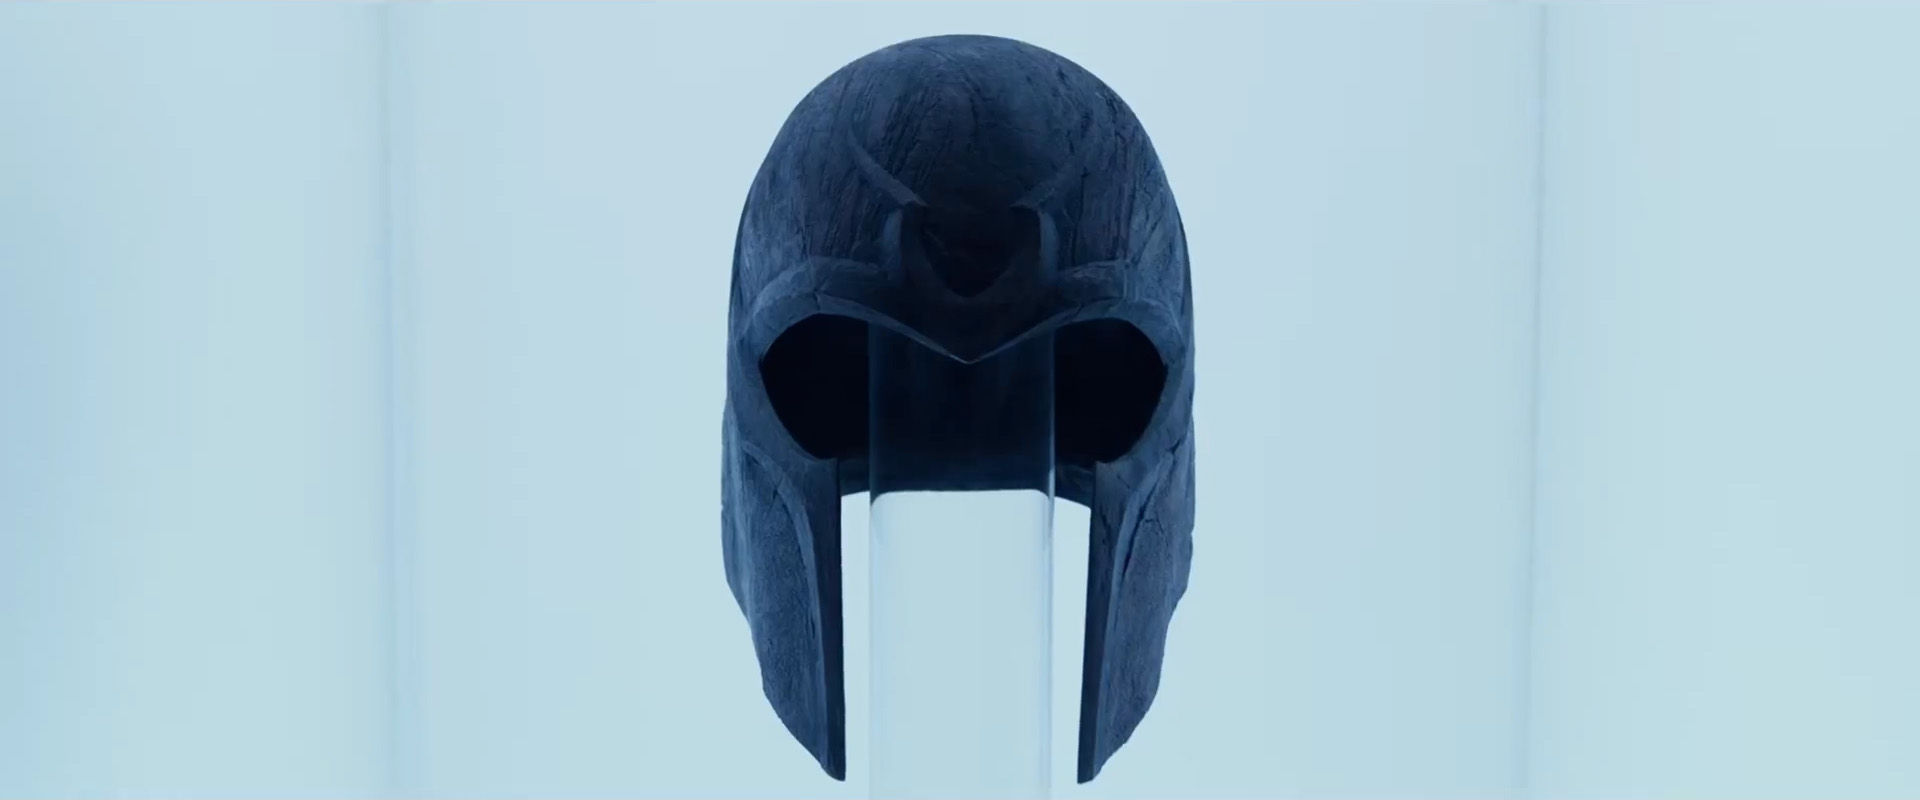 magneto helmet days of future past - photo #14